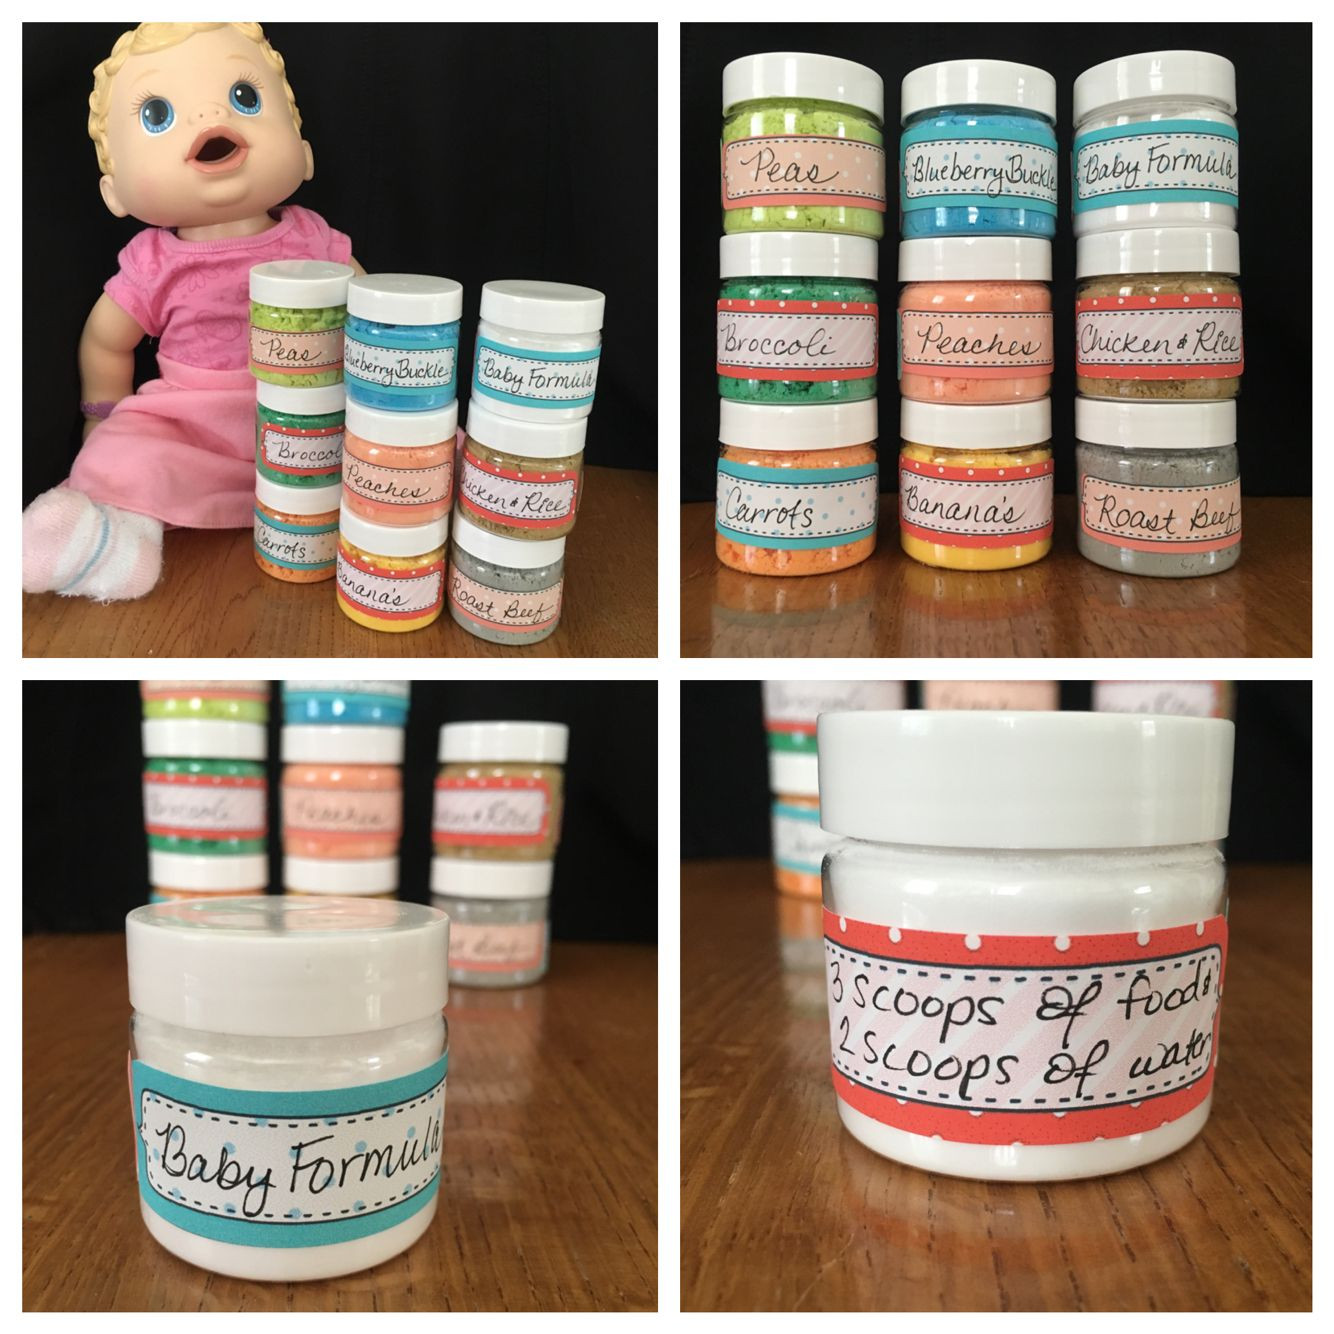 Best ideas about DIY Baby Alive Food . Save or Pin Homemade Baby Alive baby food made with Dollar store items Now.